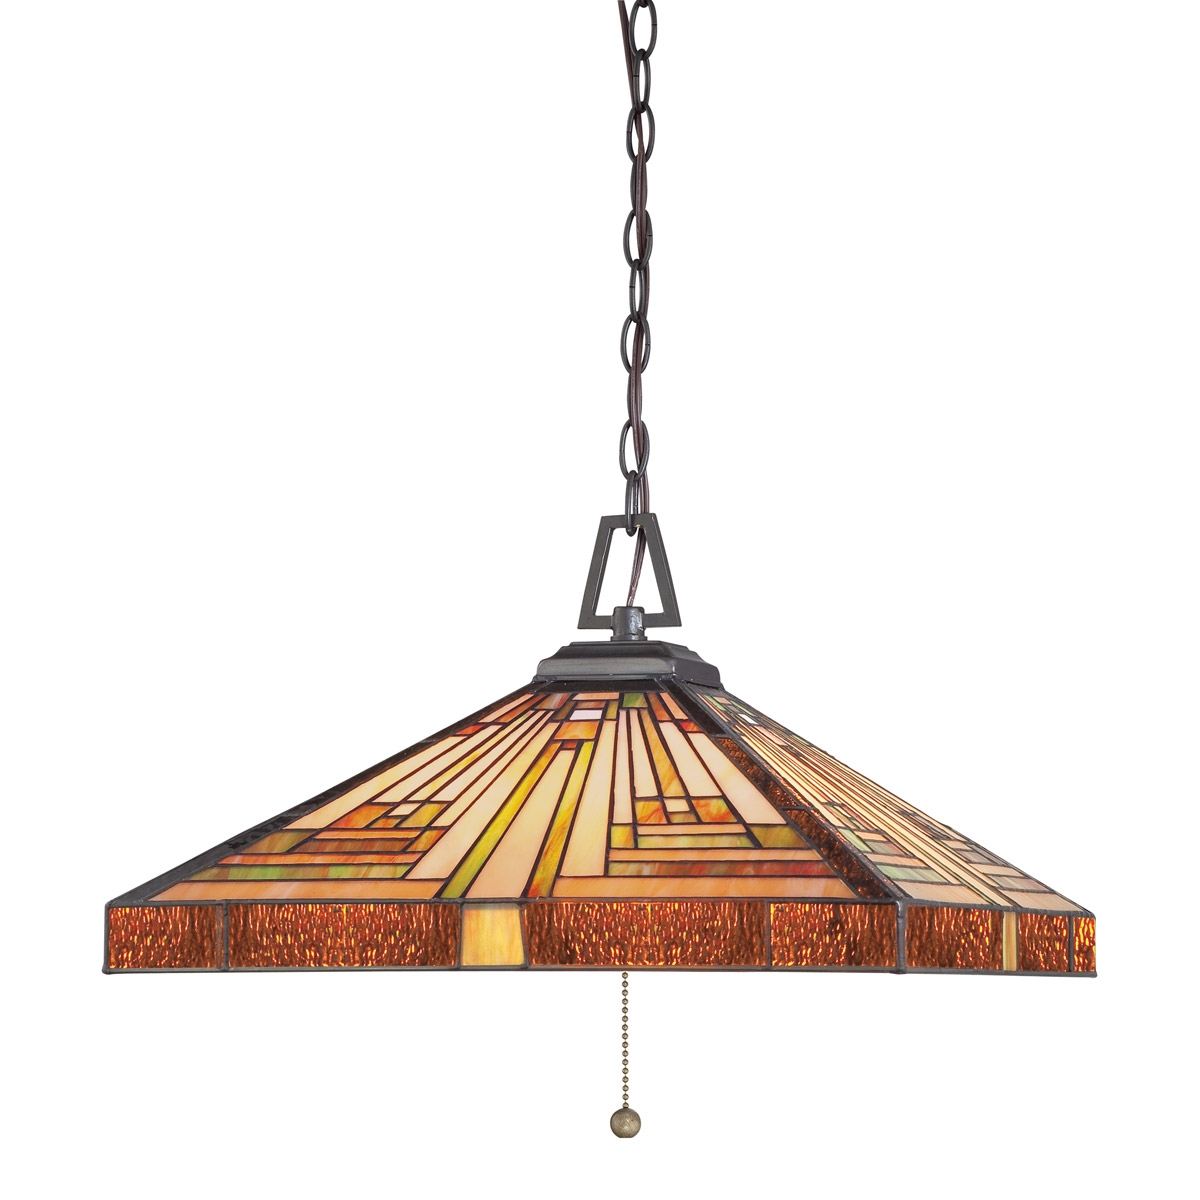 Quoizel Tiffany Inglenook Ceiling Light Pendant - Fitting ... |Quoizel Pendant Lighting